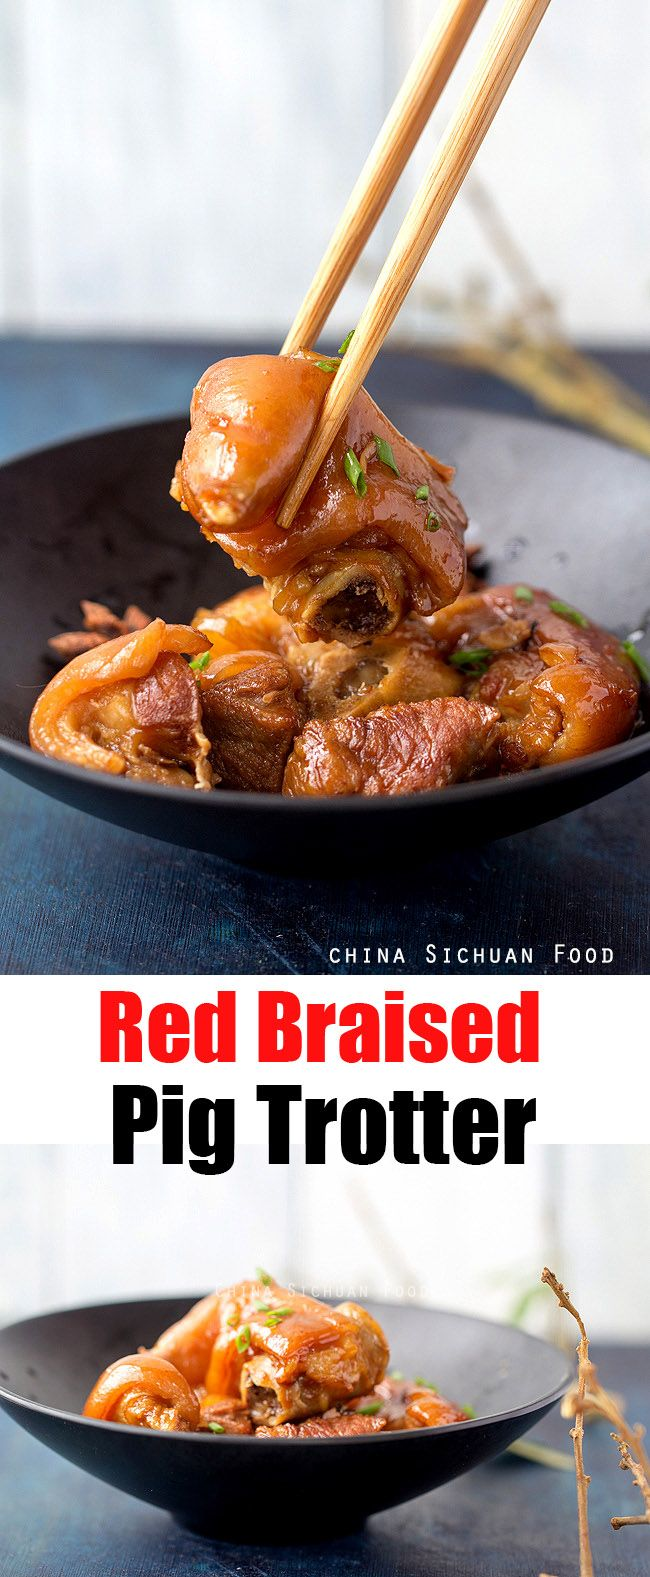 212 best chinese taiwanese food recipes images on pinterest asian red braised pig trotter chinasichuanfood forumfinder Image collections